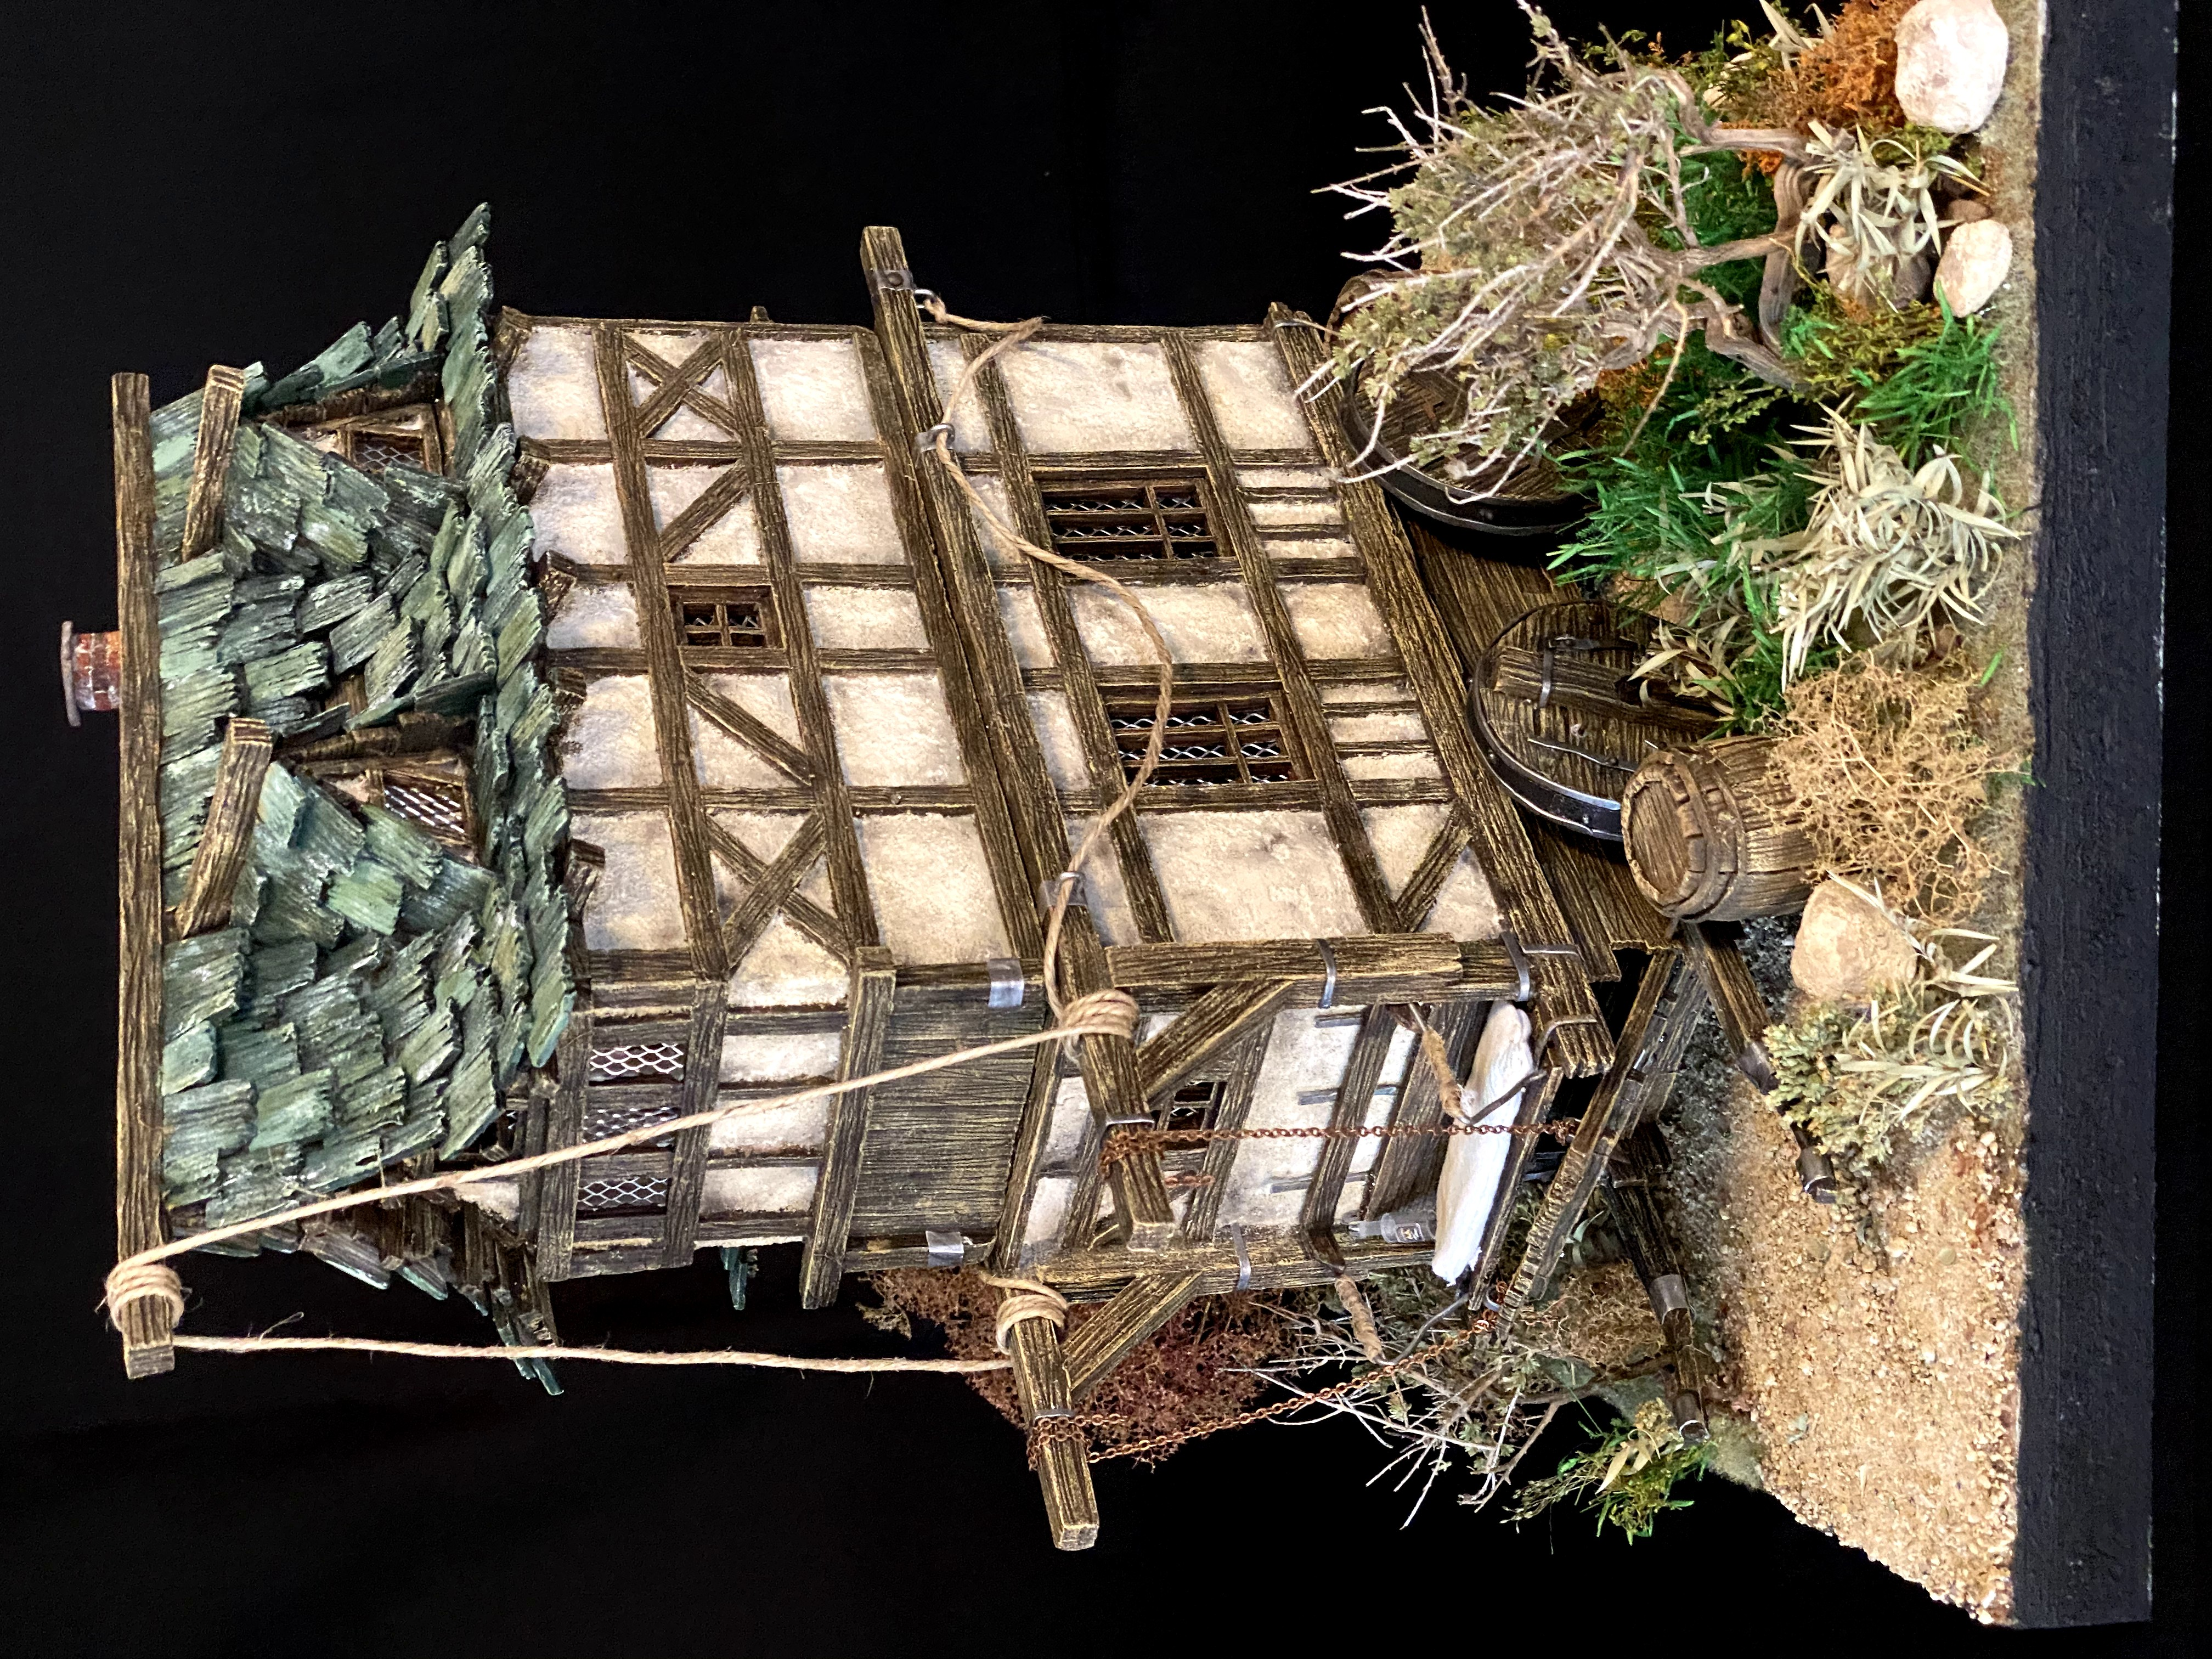 Nomad a Wagon House for d&d and tabletop games